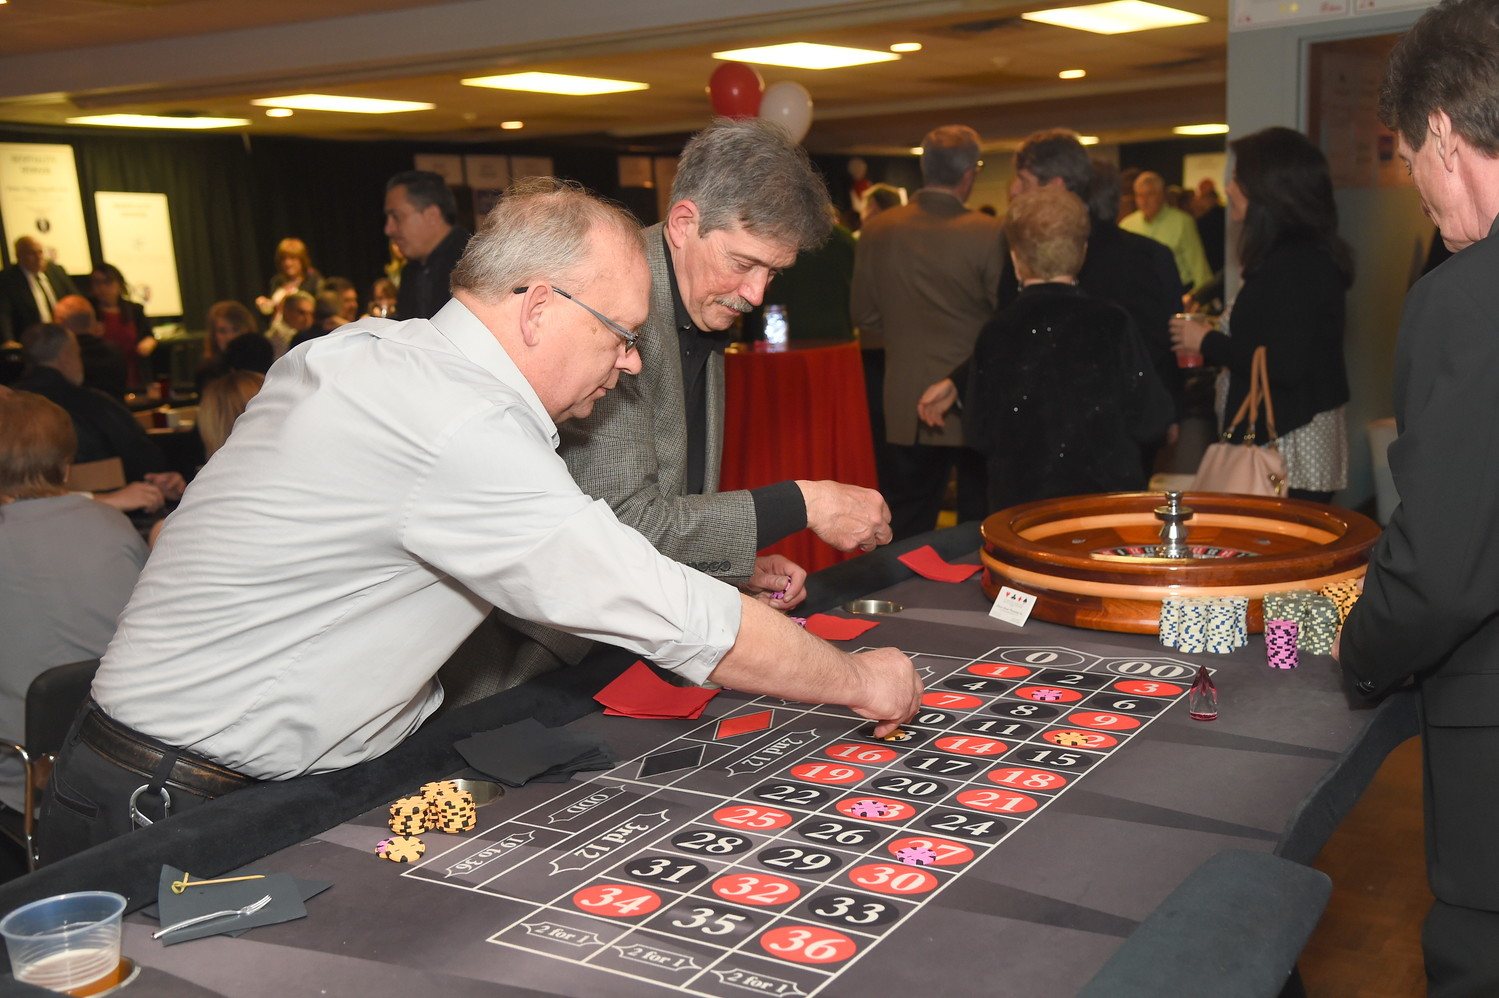 Randy Schiffelbein, left, and Gary Reusch, of Valley Stream, played roulette during Monte Carlo Night at the Sandel Senior Center last Saturday.